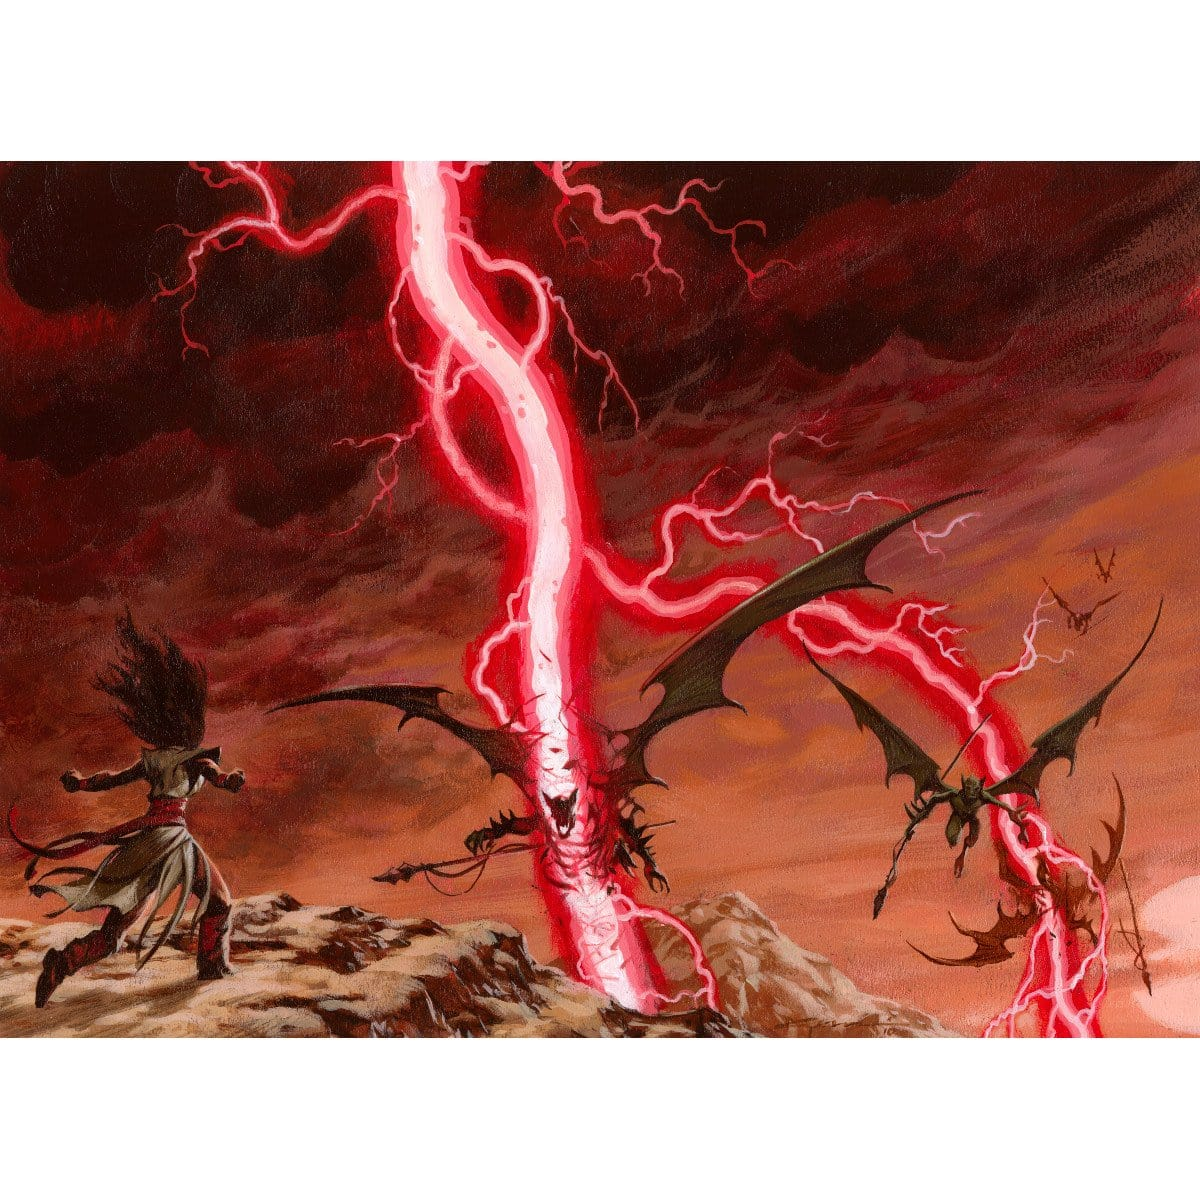 Chain Lightning Print - Print - Original Magic Art - Accessories for Magic the Gathering and other card games